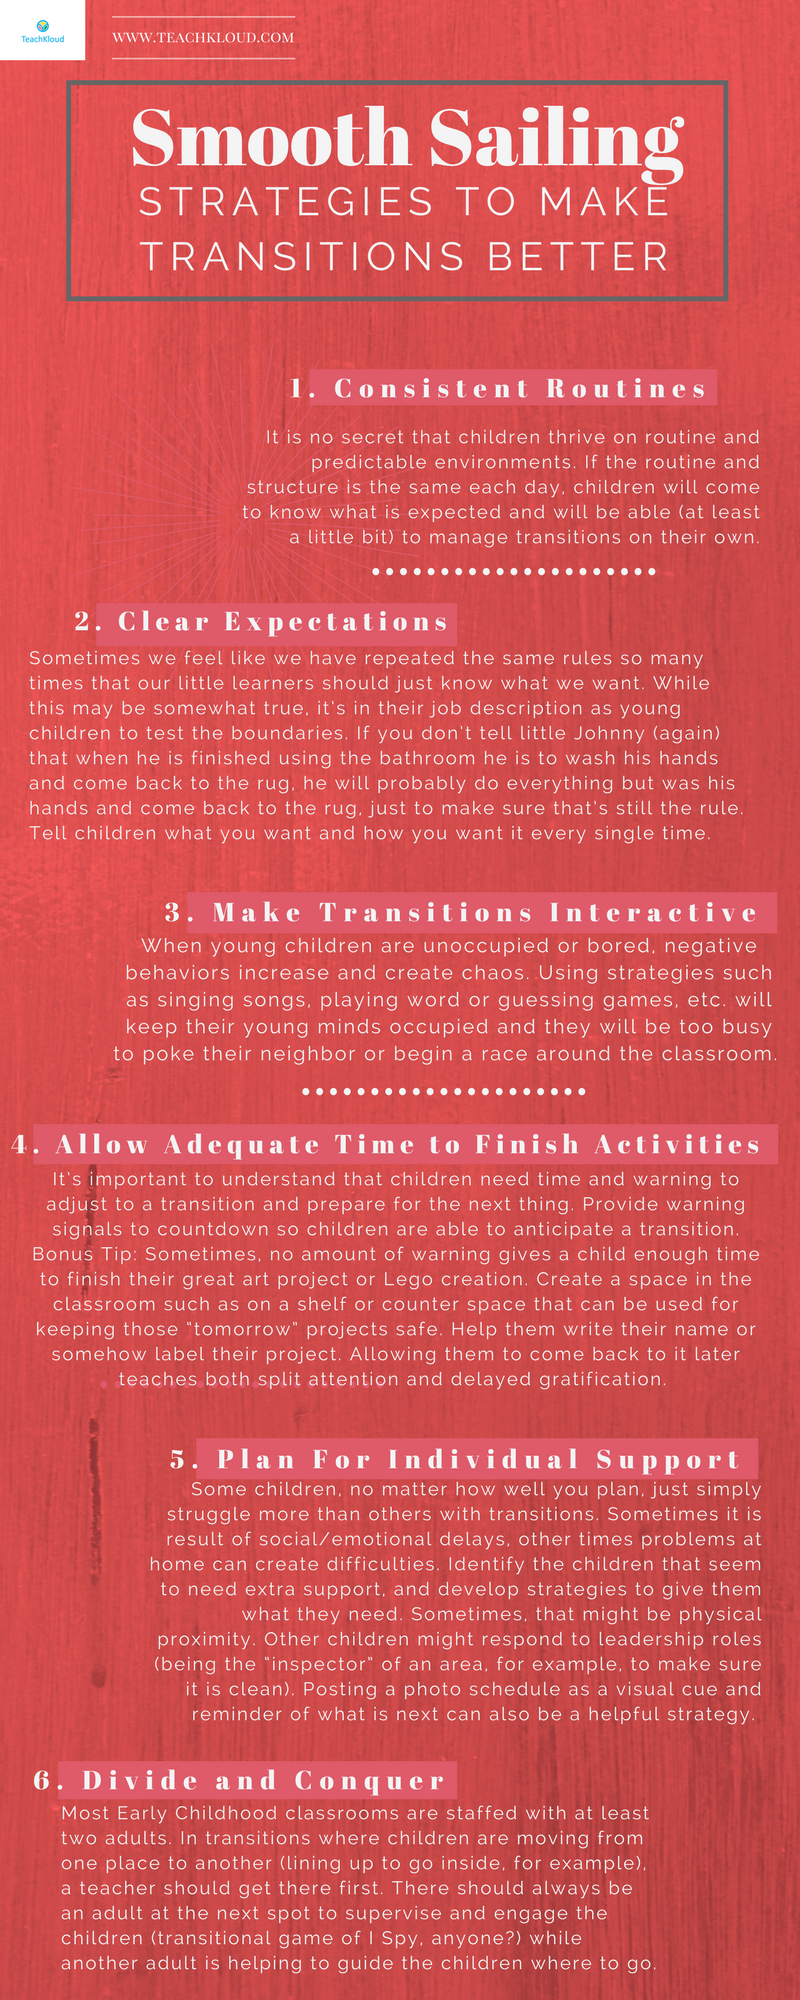 Smooth Sailing 6 Strategies To Make Transitions Better Infographic